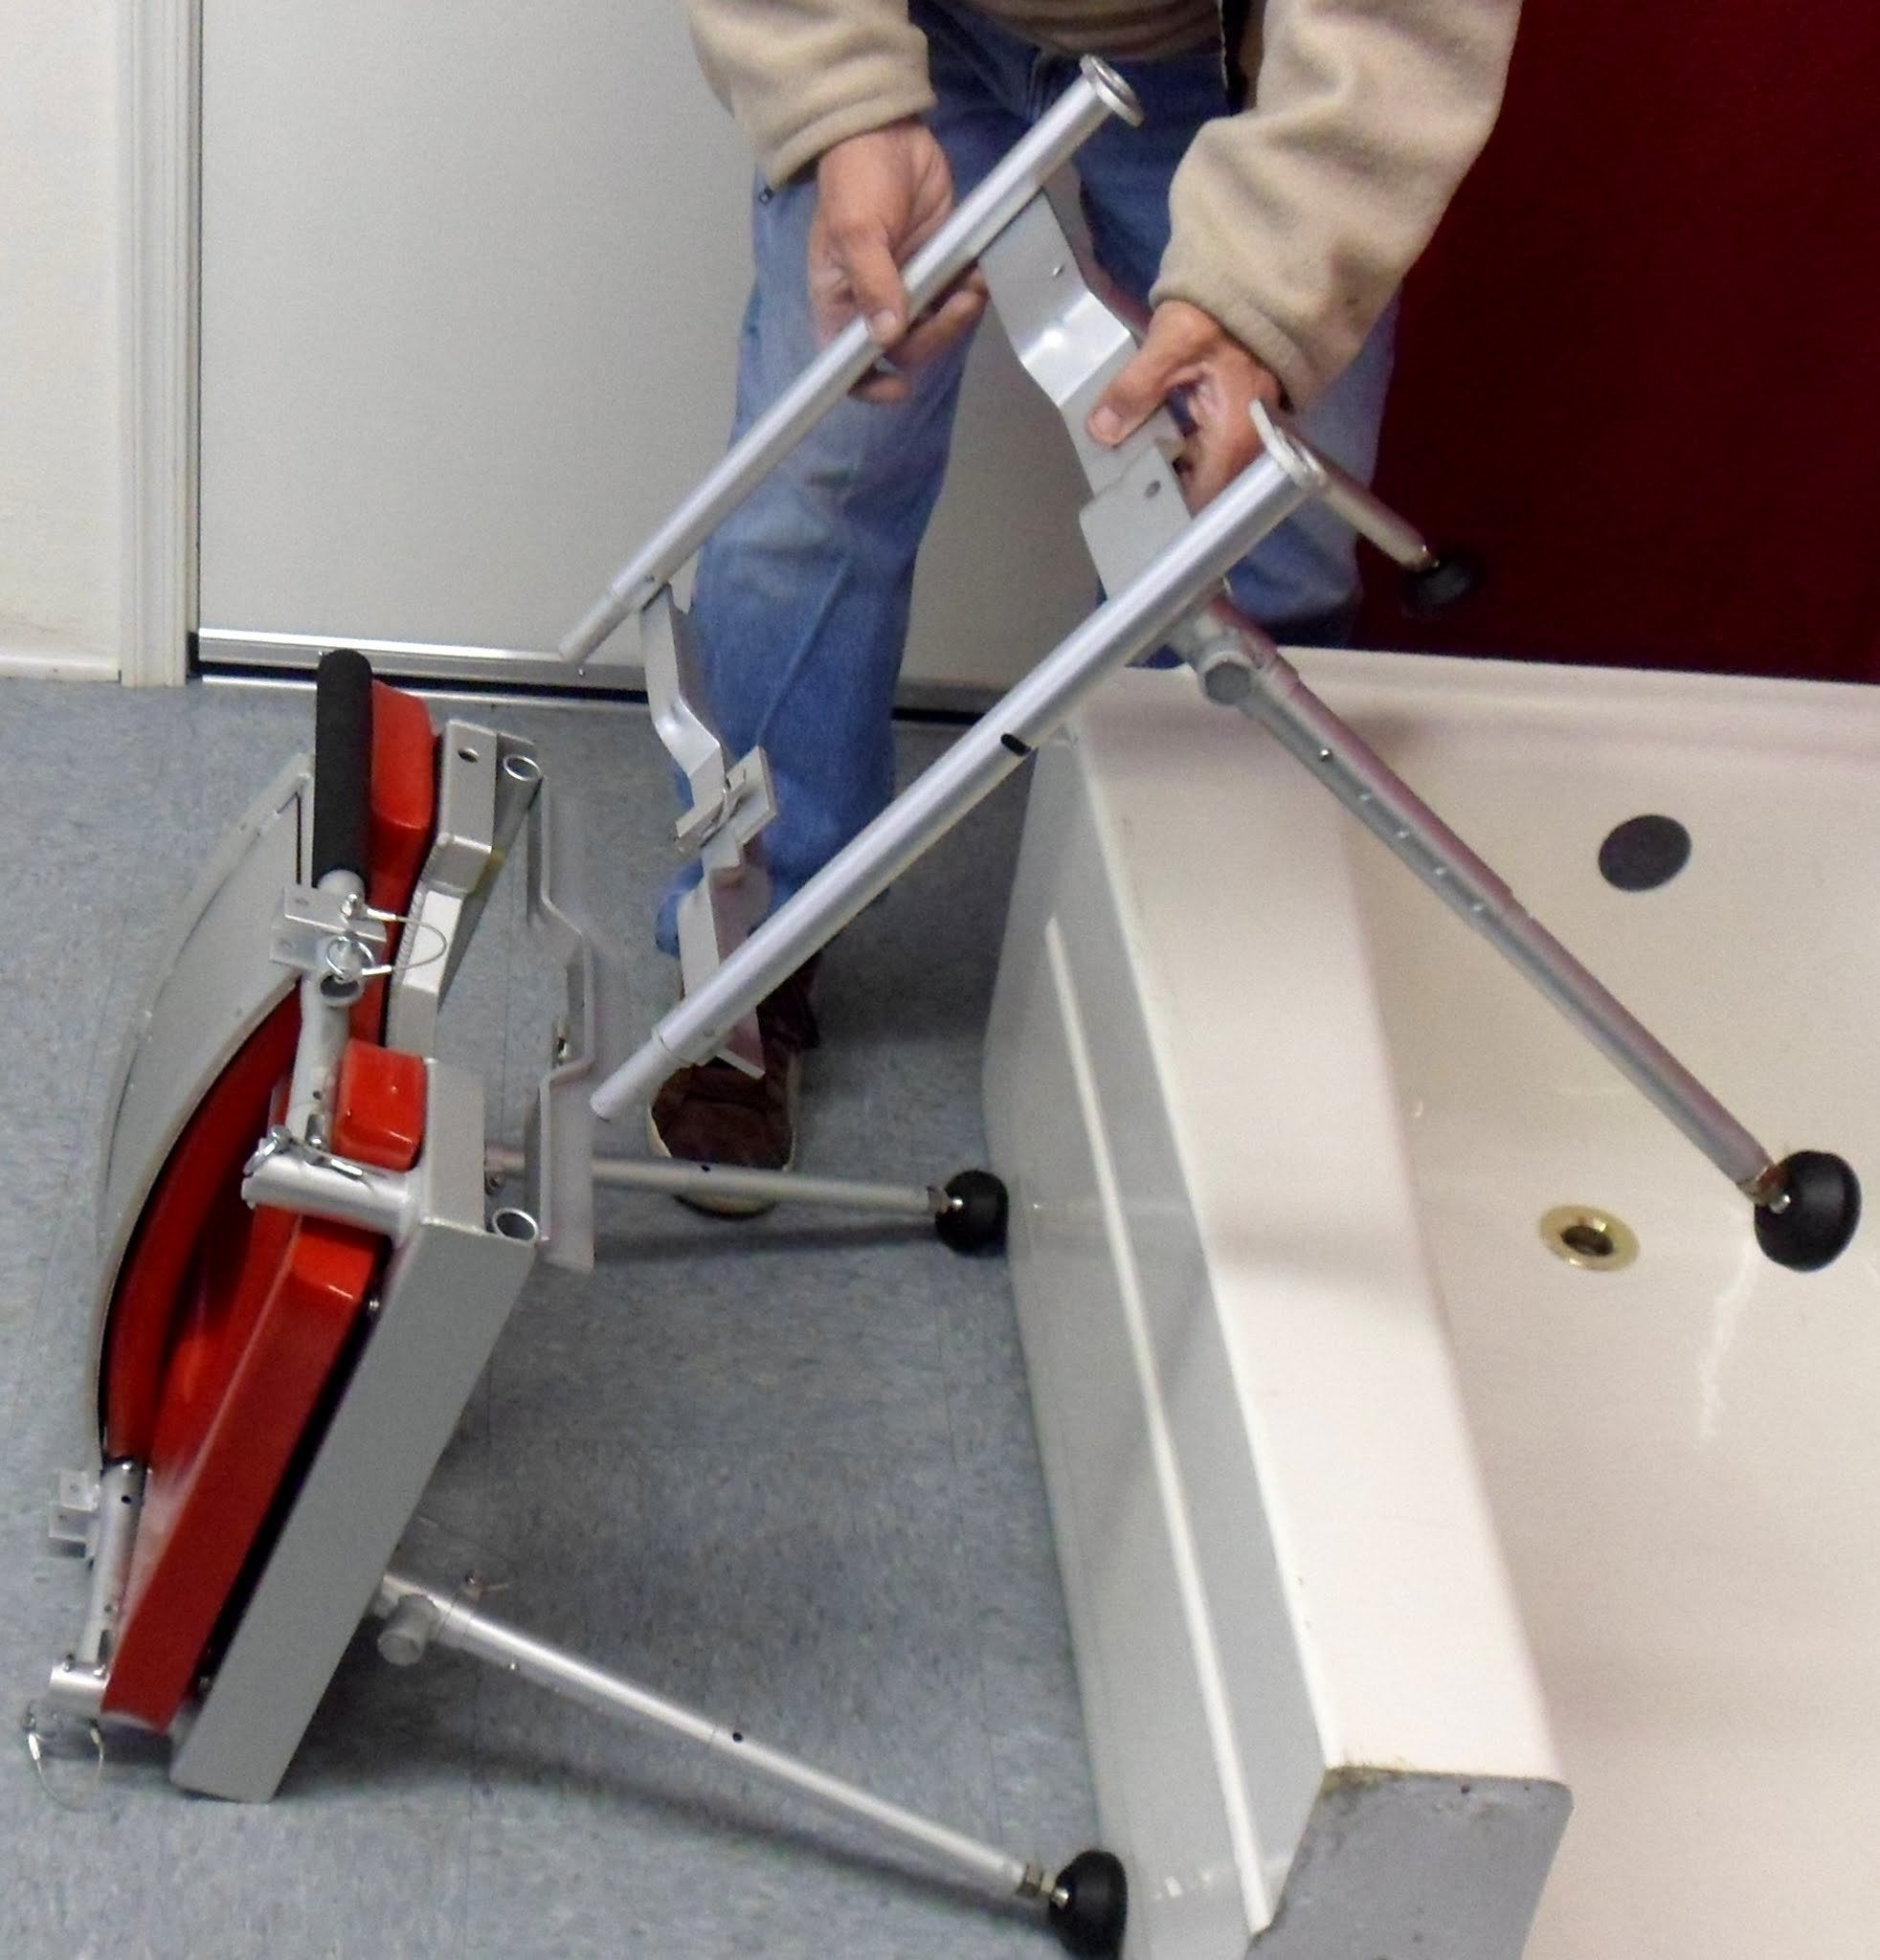 Portable GO-Anywhere Stationary Tub Slider (STS) being assembled and placed over bathtub